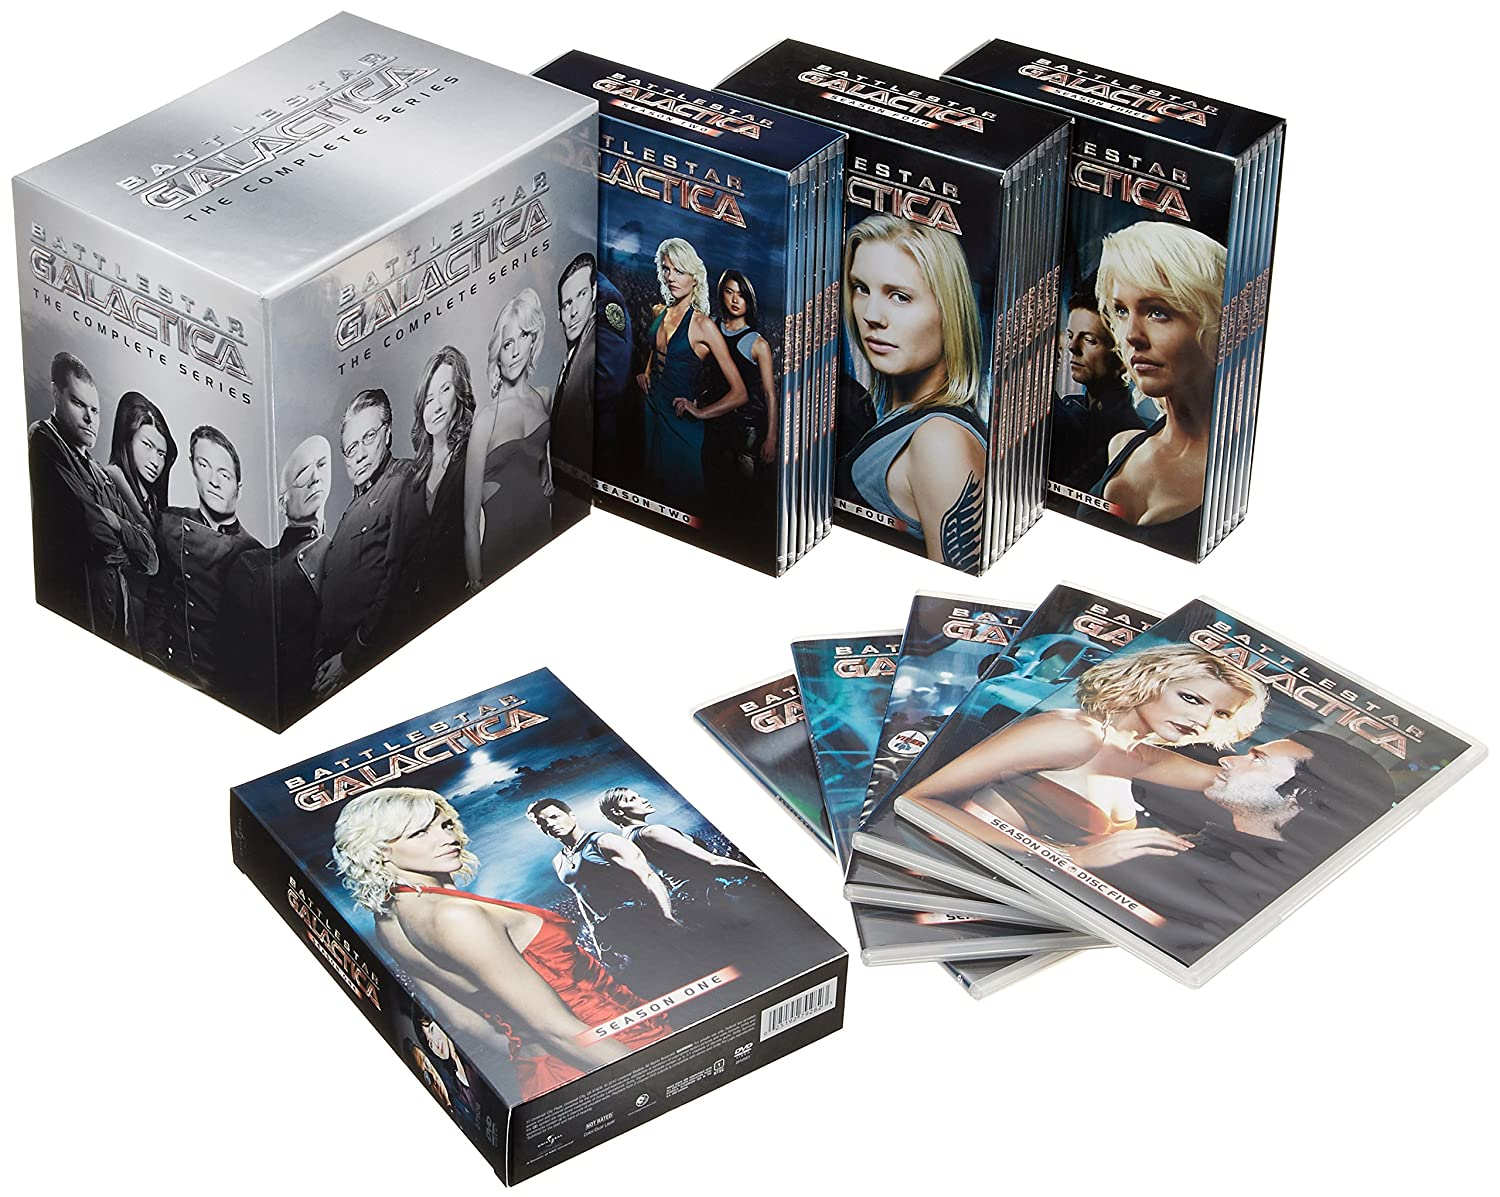 Battlestar Galactica: The Complete Series Edward James Olmos Jamie Bamber Katee Sackhoff Mary McDonnell